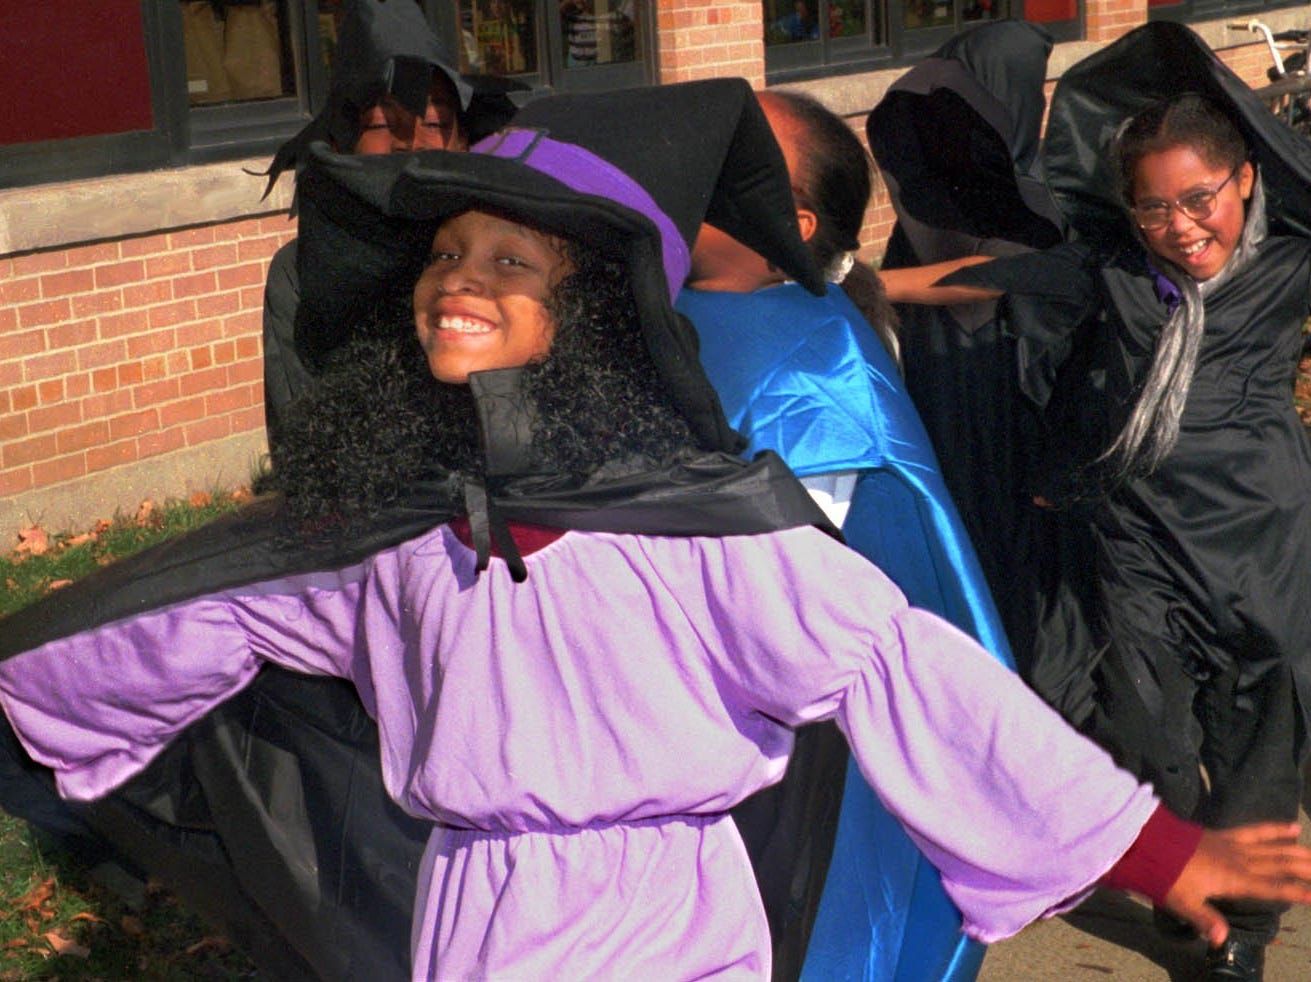 1998: Nishelle Brooks, 8, shows off her witch outfit as she marches around Booth Elementary School with her classmates Friday afternoon.